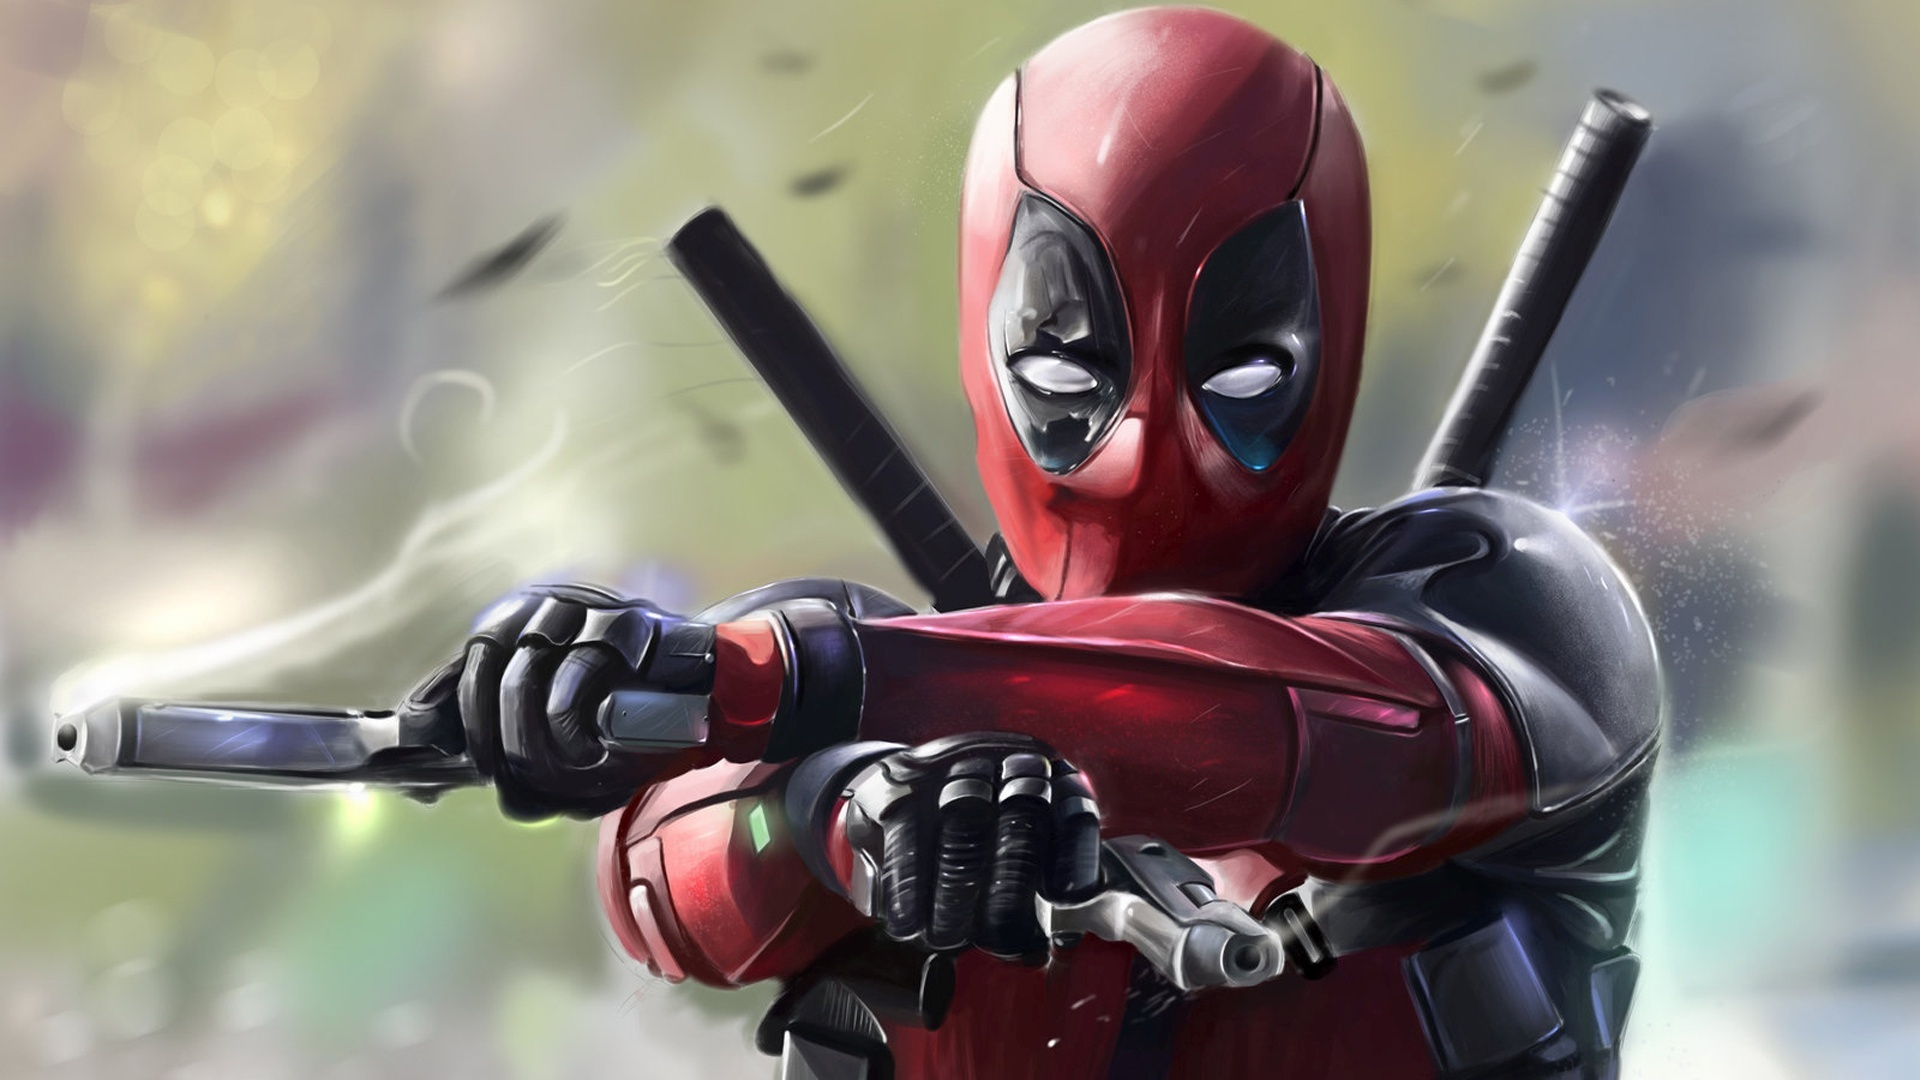 1920x1080 Deadpool 2016 Art Laptop Full Hd 1080p Hd 4k Wallpapers